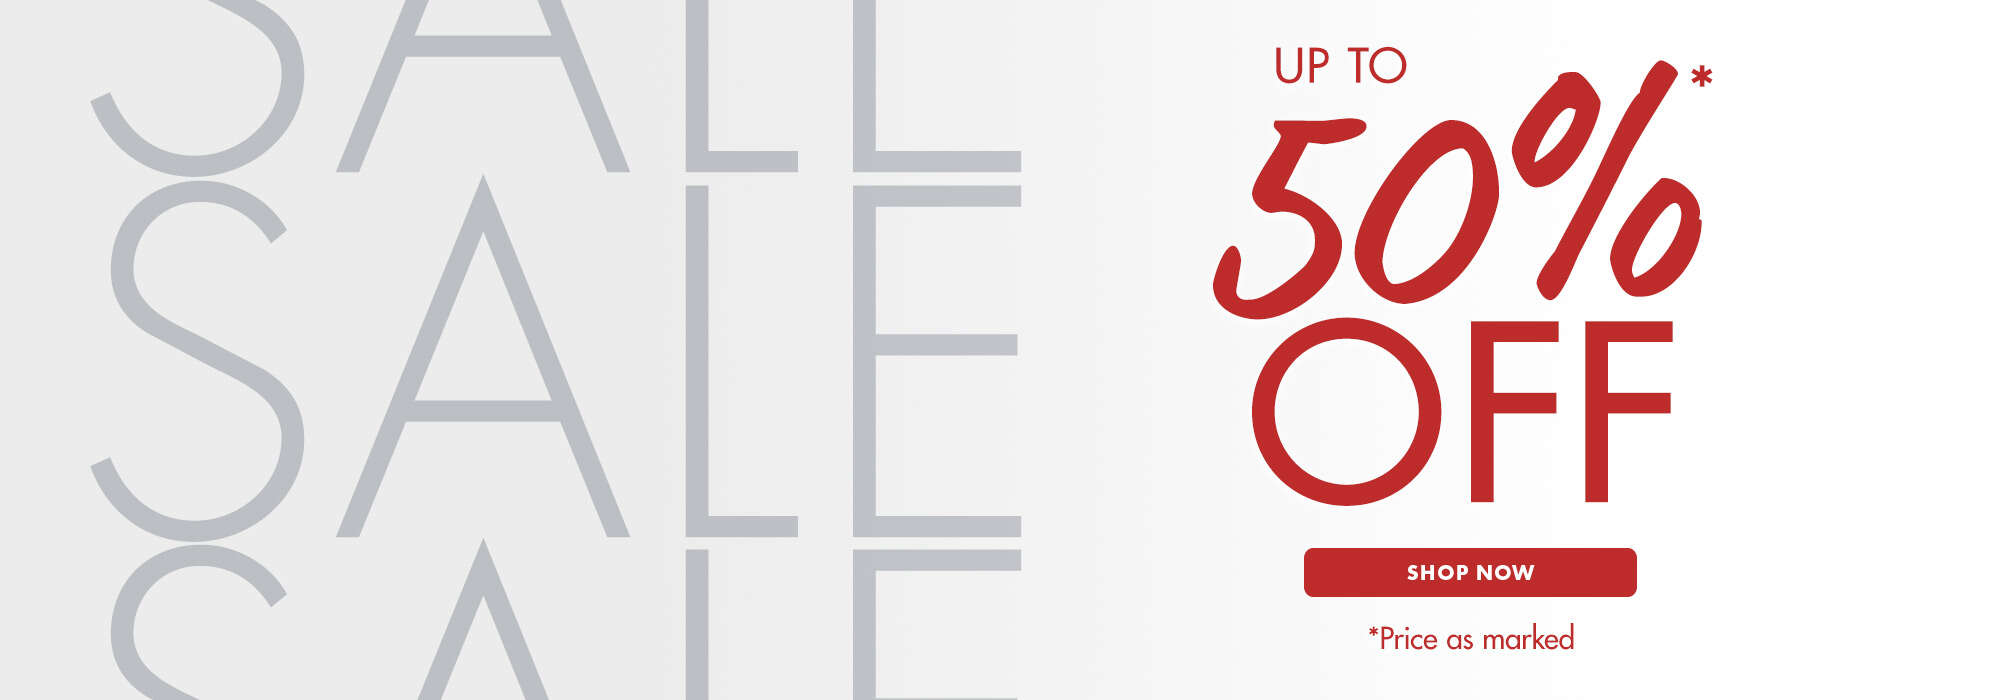 up to 50% — shop now